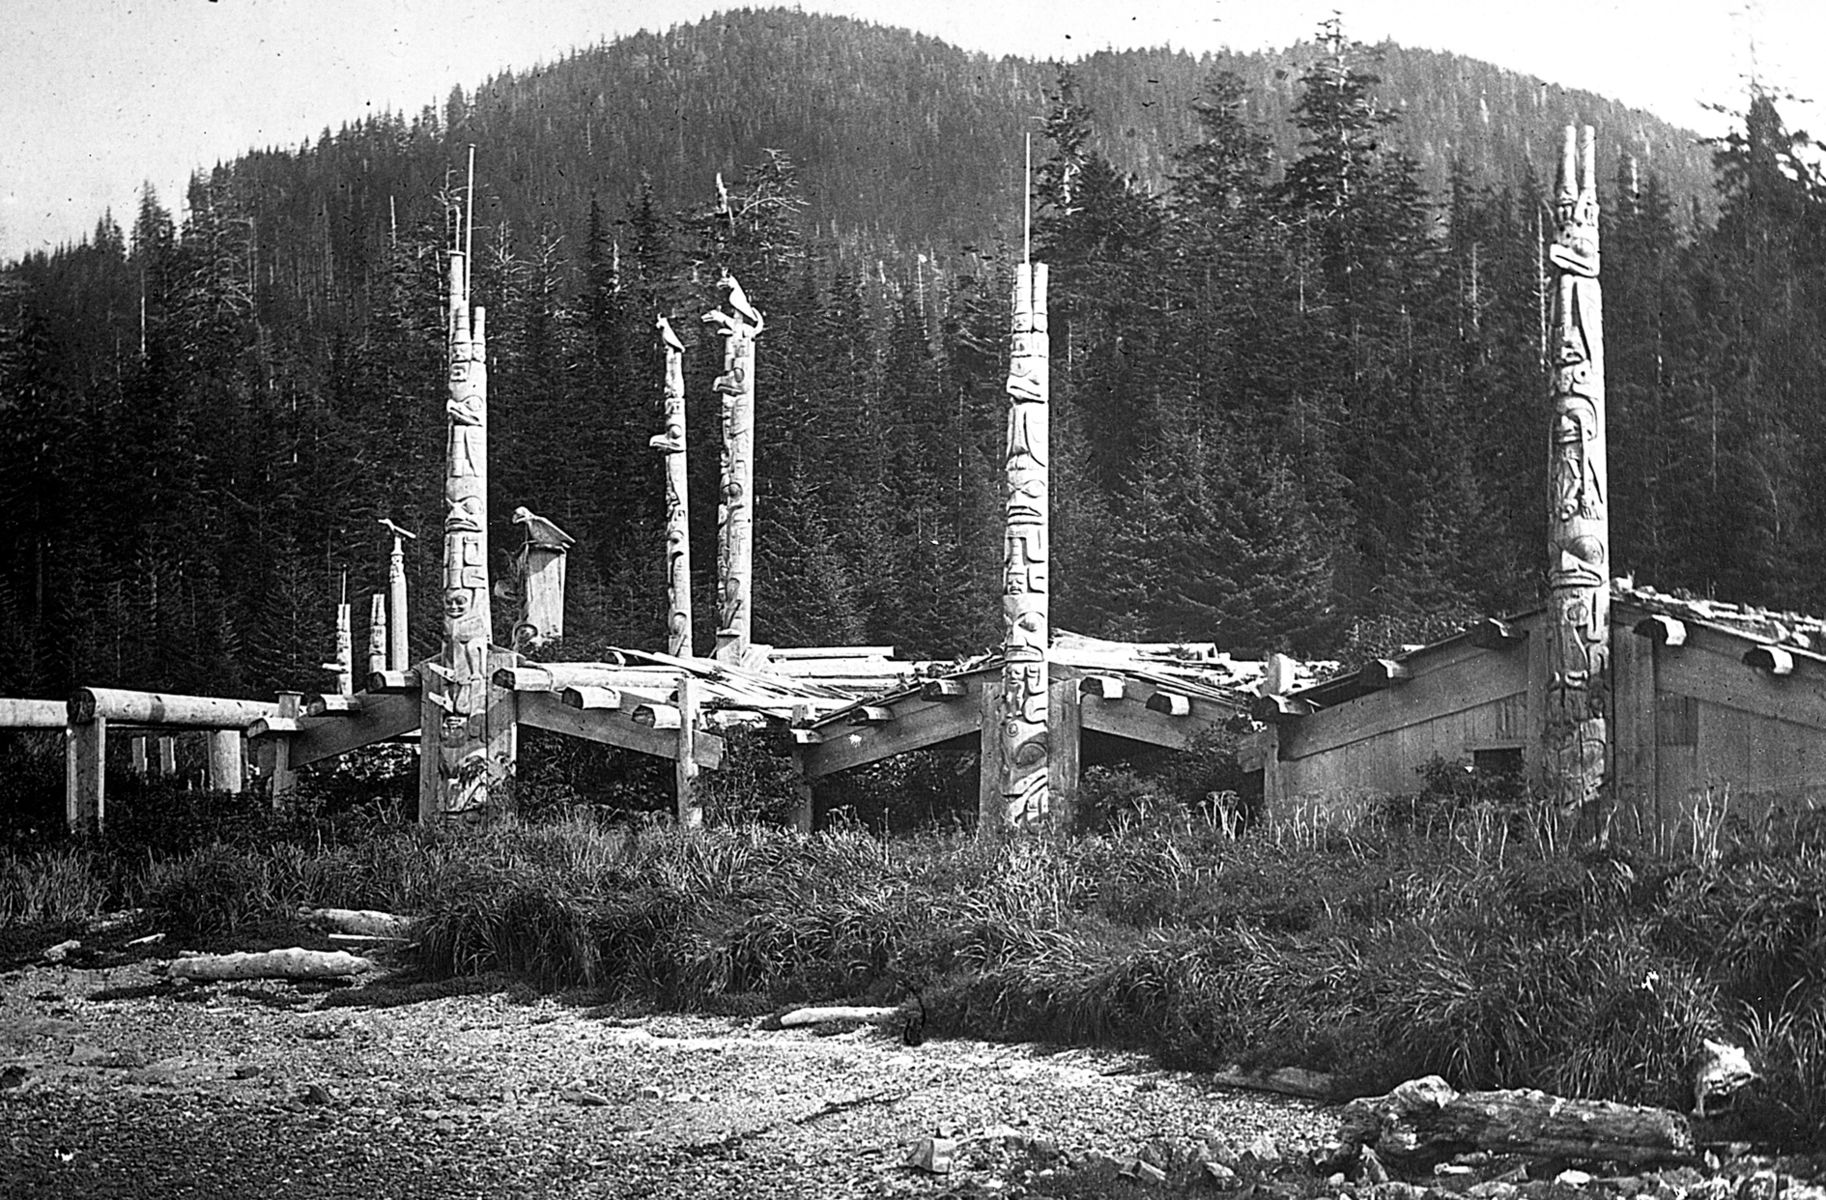 A row of houses with totems in front.